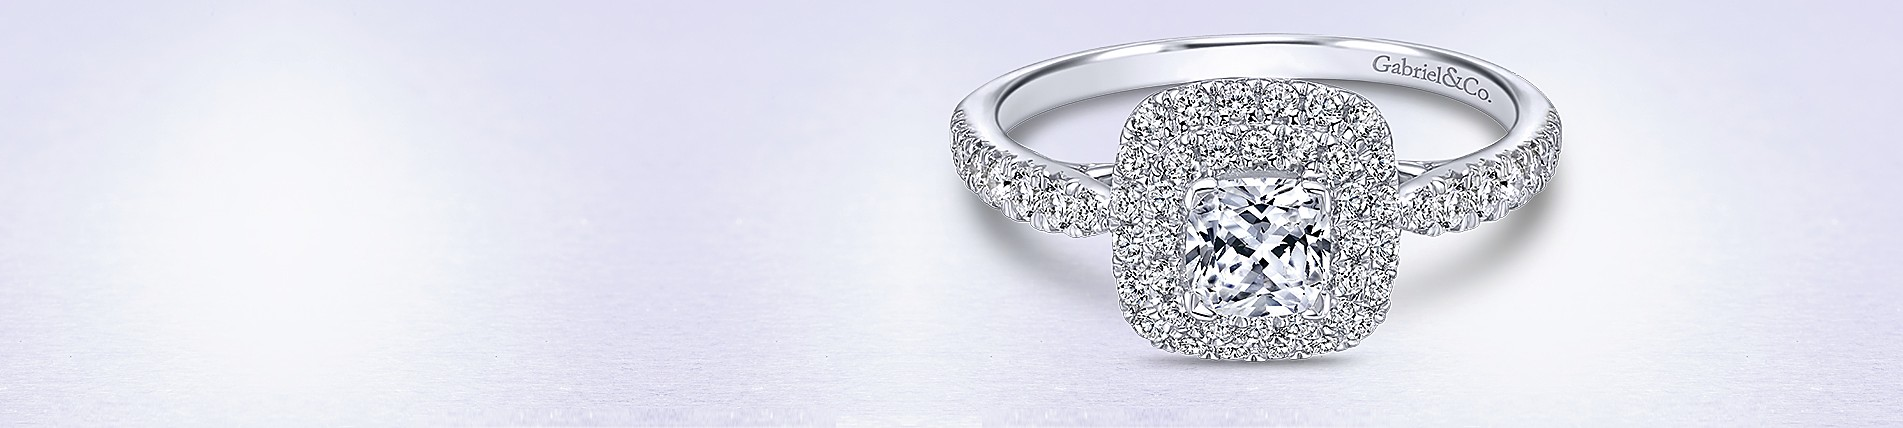 engagement diamond cushion for platinum jewelry ring rings p jewellery shop cut in